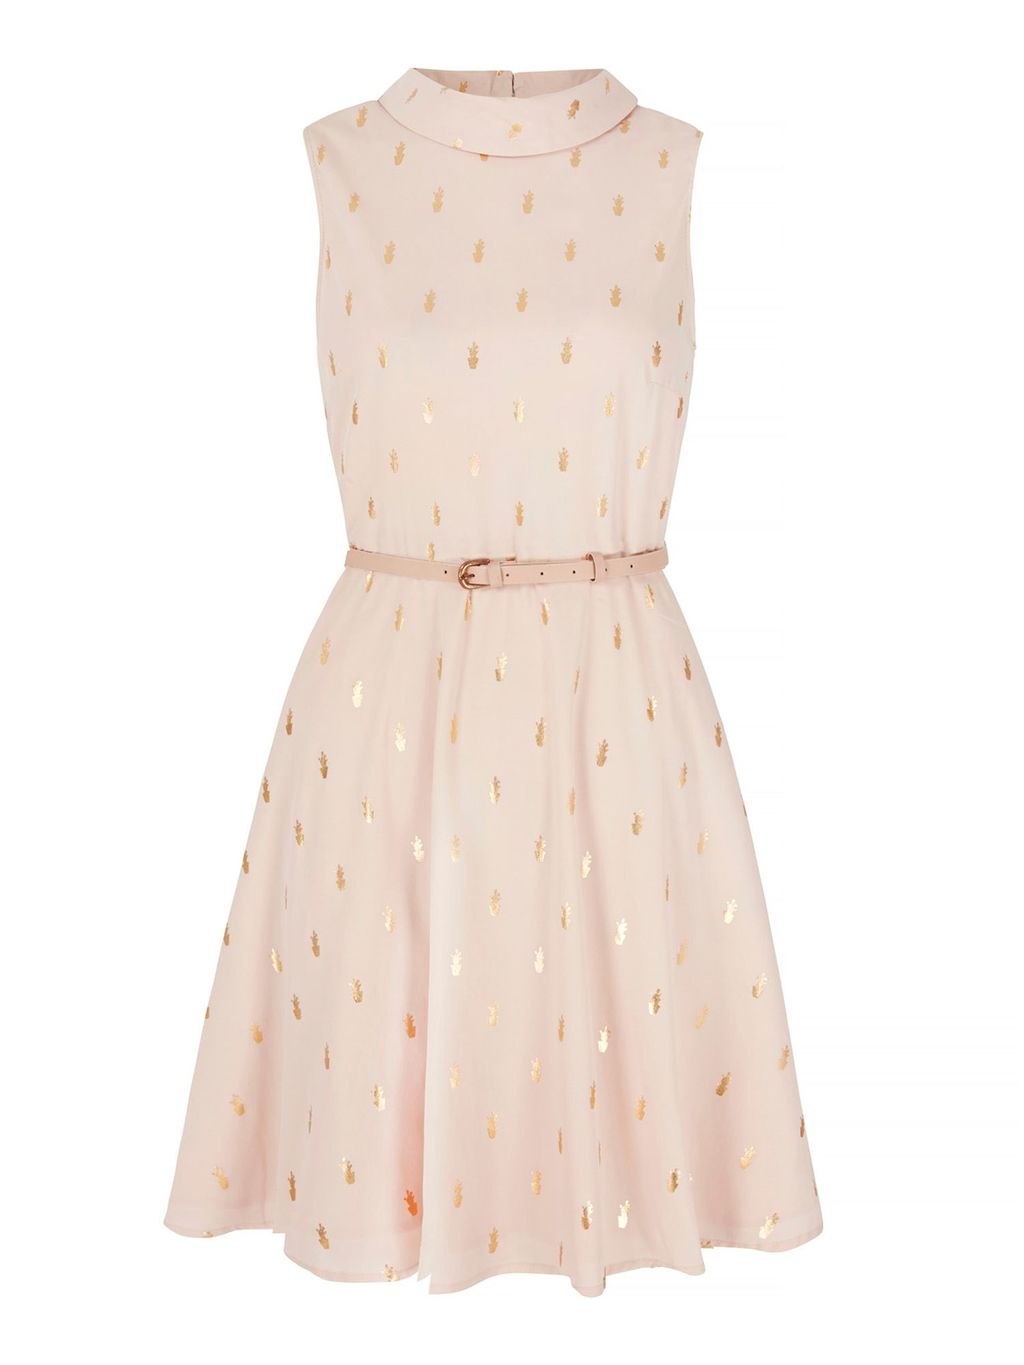 Cactus Foil Print Dress, Nude - sleeve style: sleeveless; neckline: high neck; waist detail: belted waist/tie at waist/drawstring; predominant colour: blush; secondary colour: gold; occasions: evening; length: just above the knee; fit: fitted at waist & bust; style: fit & flare; fibres: polyester/polyamide - 100%; sleeve length: sleeveless; pattern type: fabric; pattern: patterned/print; texture group: woven light midweight; season: s/s 2016; wardrobe: event